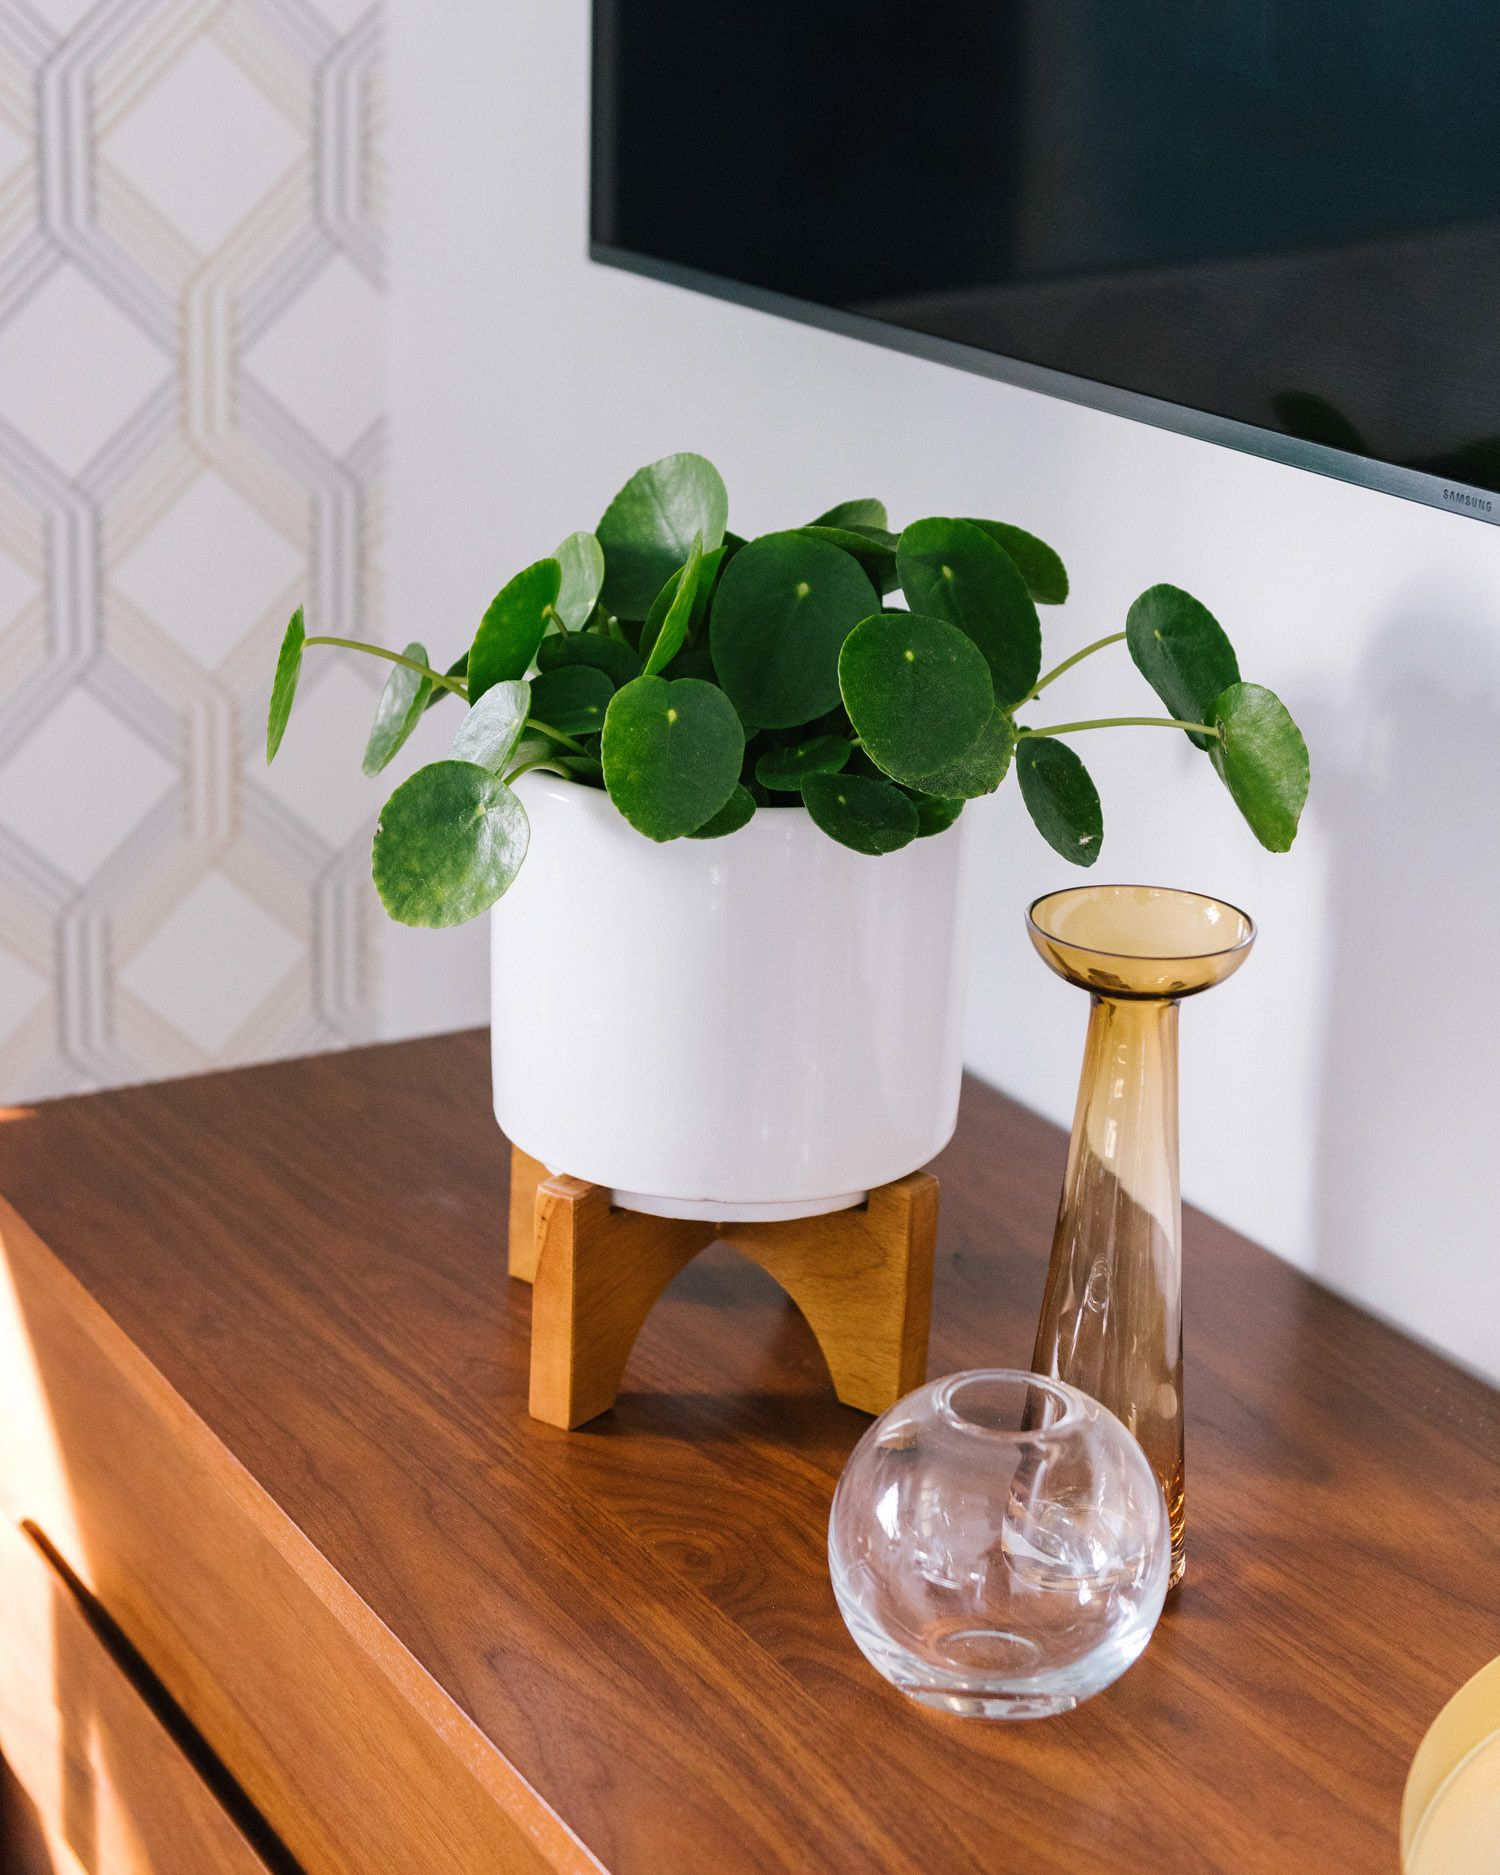 The Kerchum Residence Is A Perfect Mix Of Modern: The Mid-Century Turned Leg Tabletop Planter With The Foundations Collection Pieces Is The